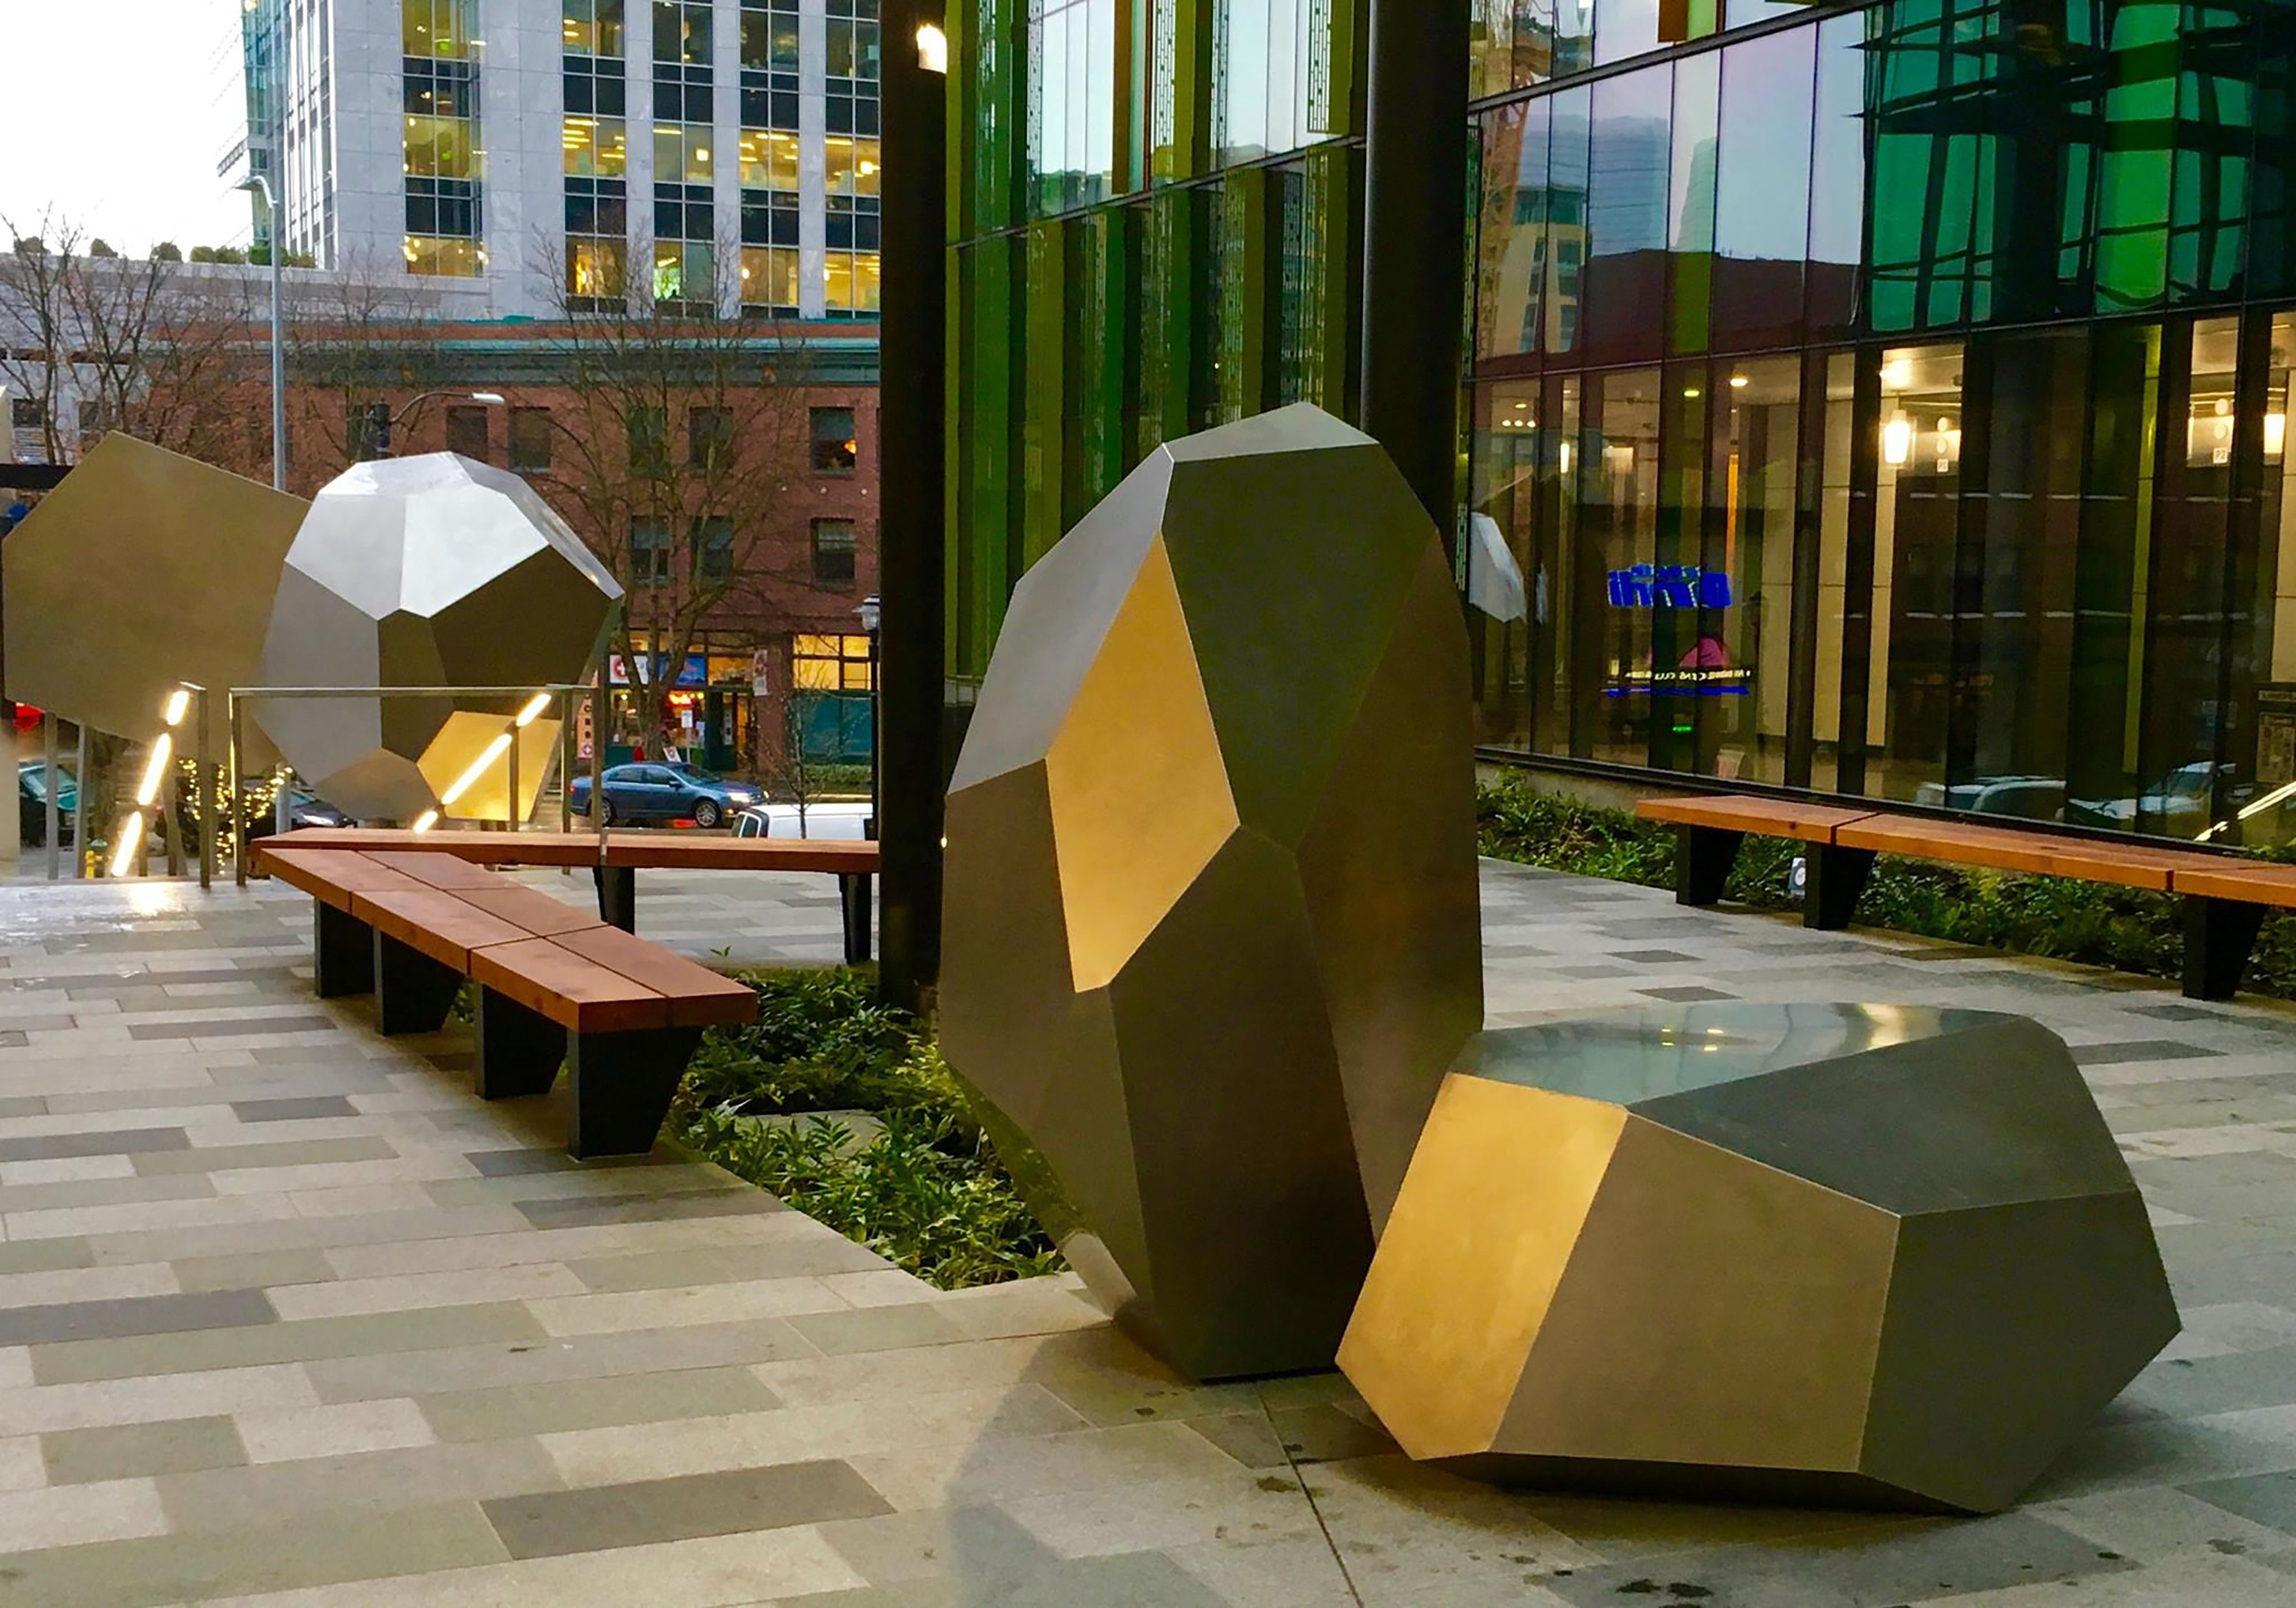 Julie Speidel 'petros' Installation Seattle Campus 2015 Collection Of